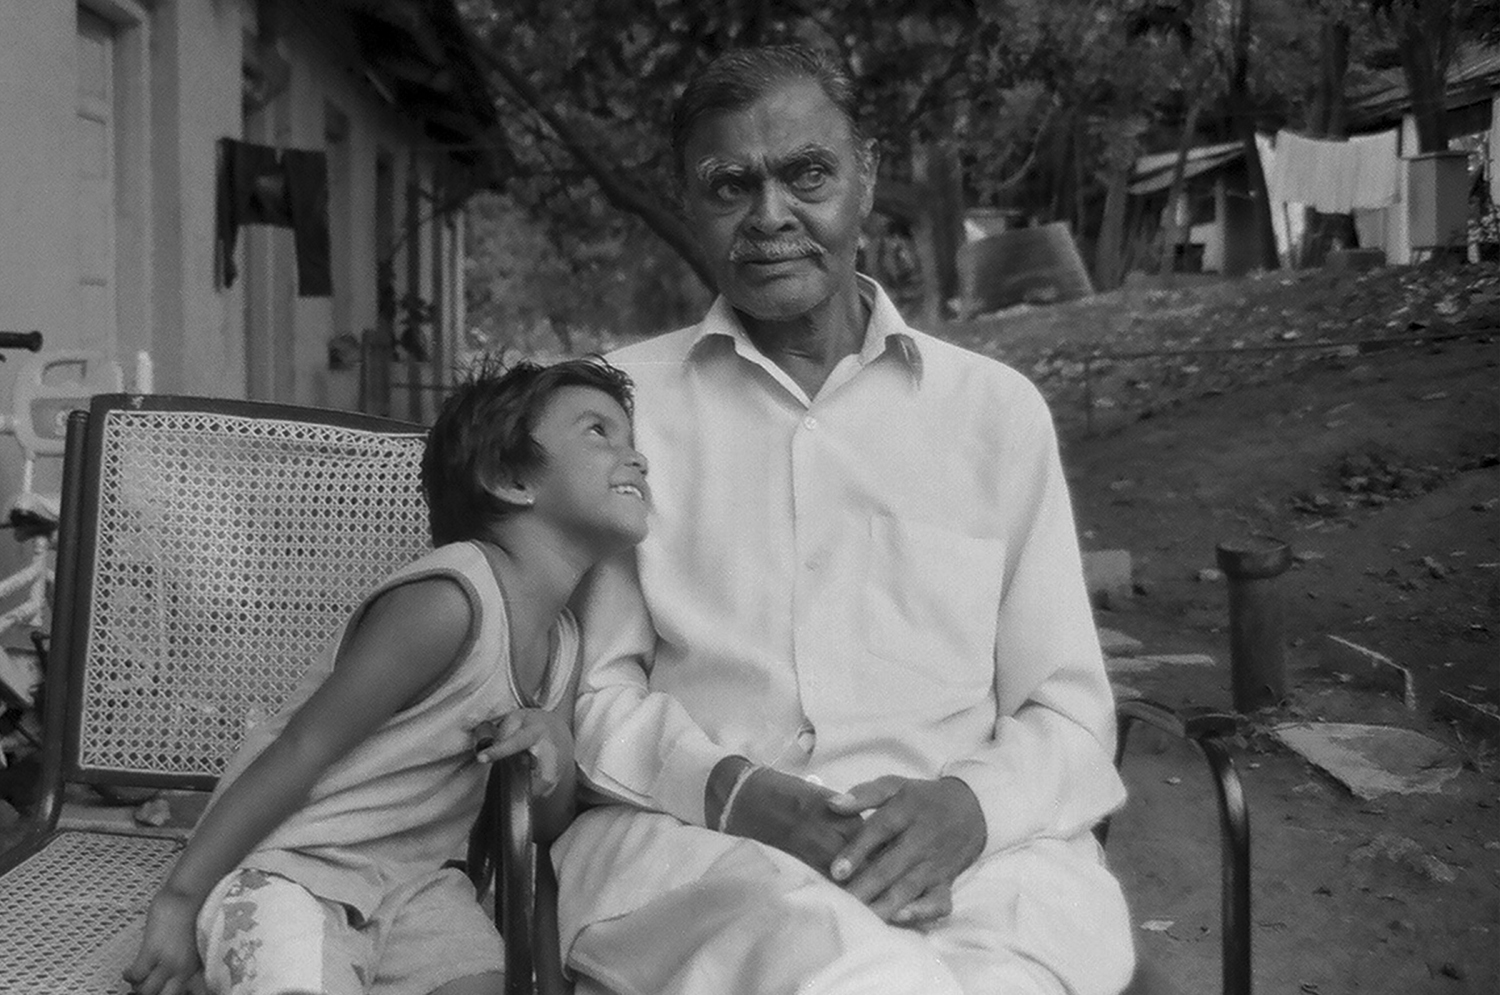 9. Tukaramji with his granddaughter who is looking into the camera. She is used to acting in a lot of films that students have to make as part of their projects | 05400021.jpg